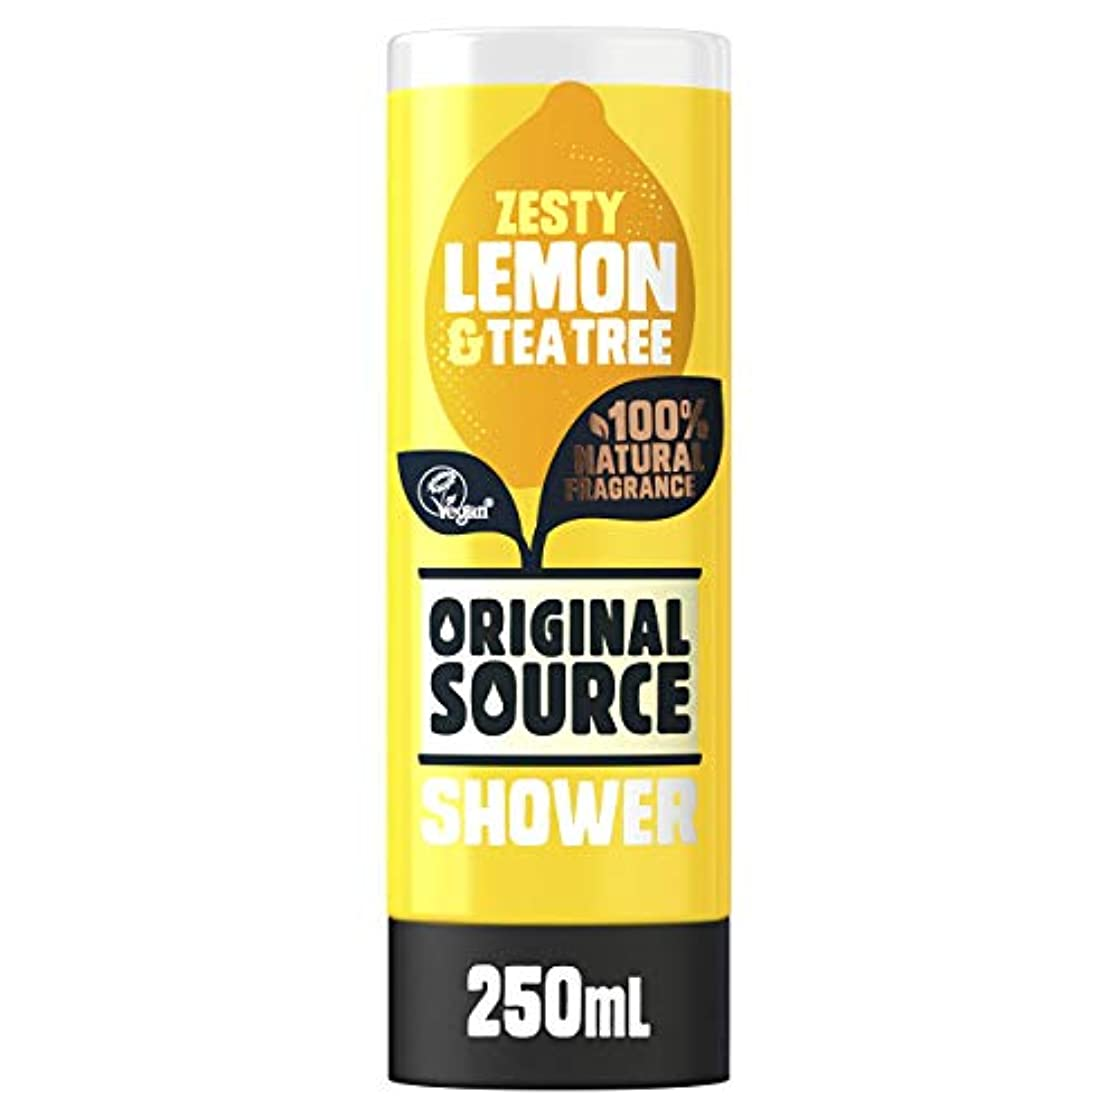 数字ビール盗難Cussons Lemon and Tea Tree Original Source Shower Gel by PZ CUSSONS (UK) LTD